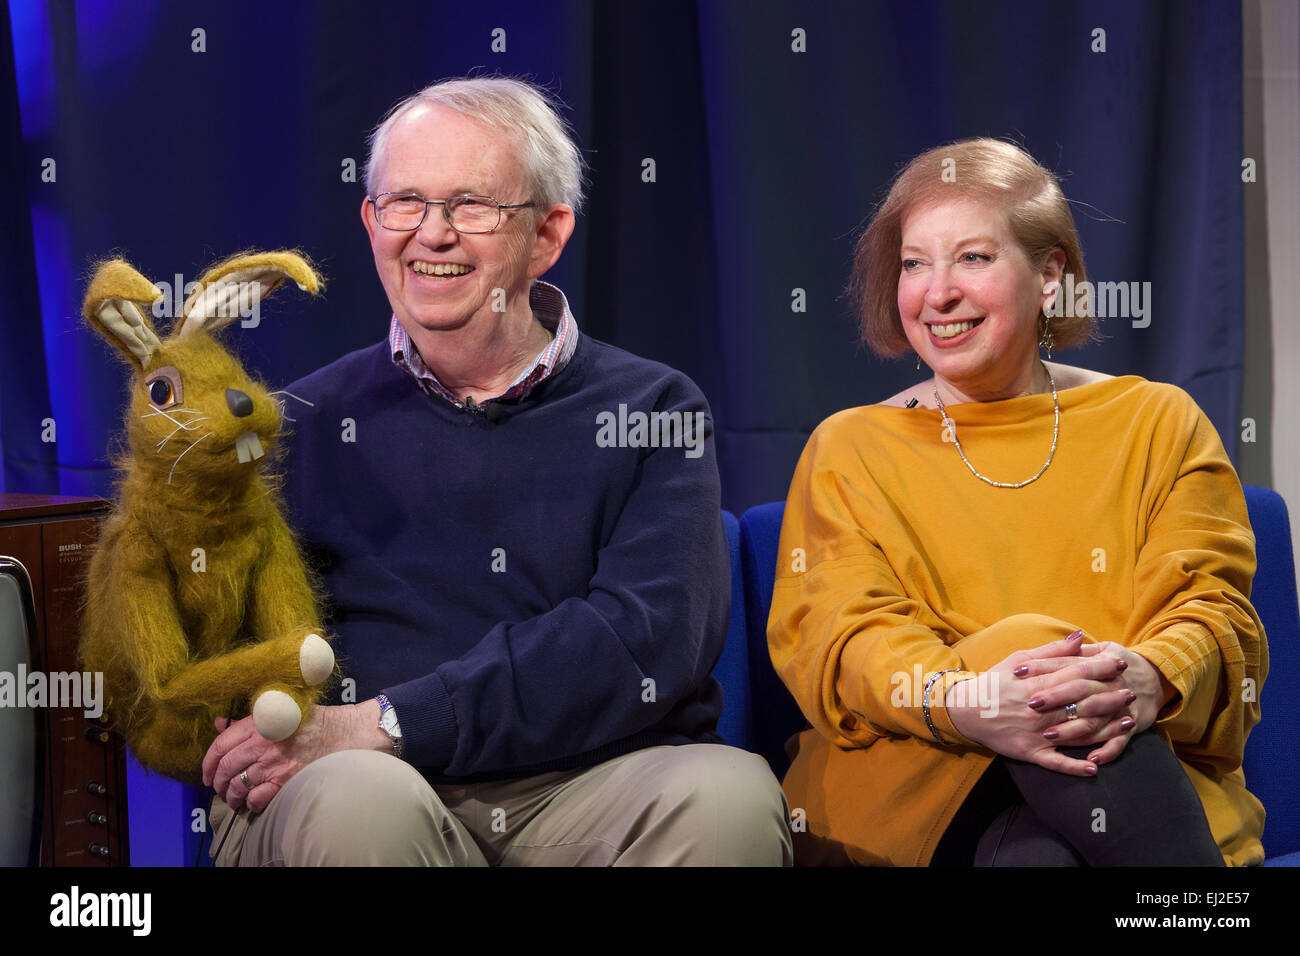 Walsall, West Midlands, UK. 20 March 2015. Puppeteer Nigel Plaskitt (L) with 'Pipkins' puppet Hartley Hare - Stock Image